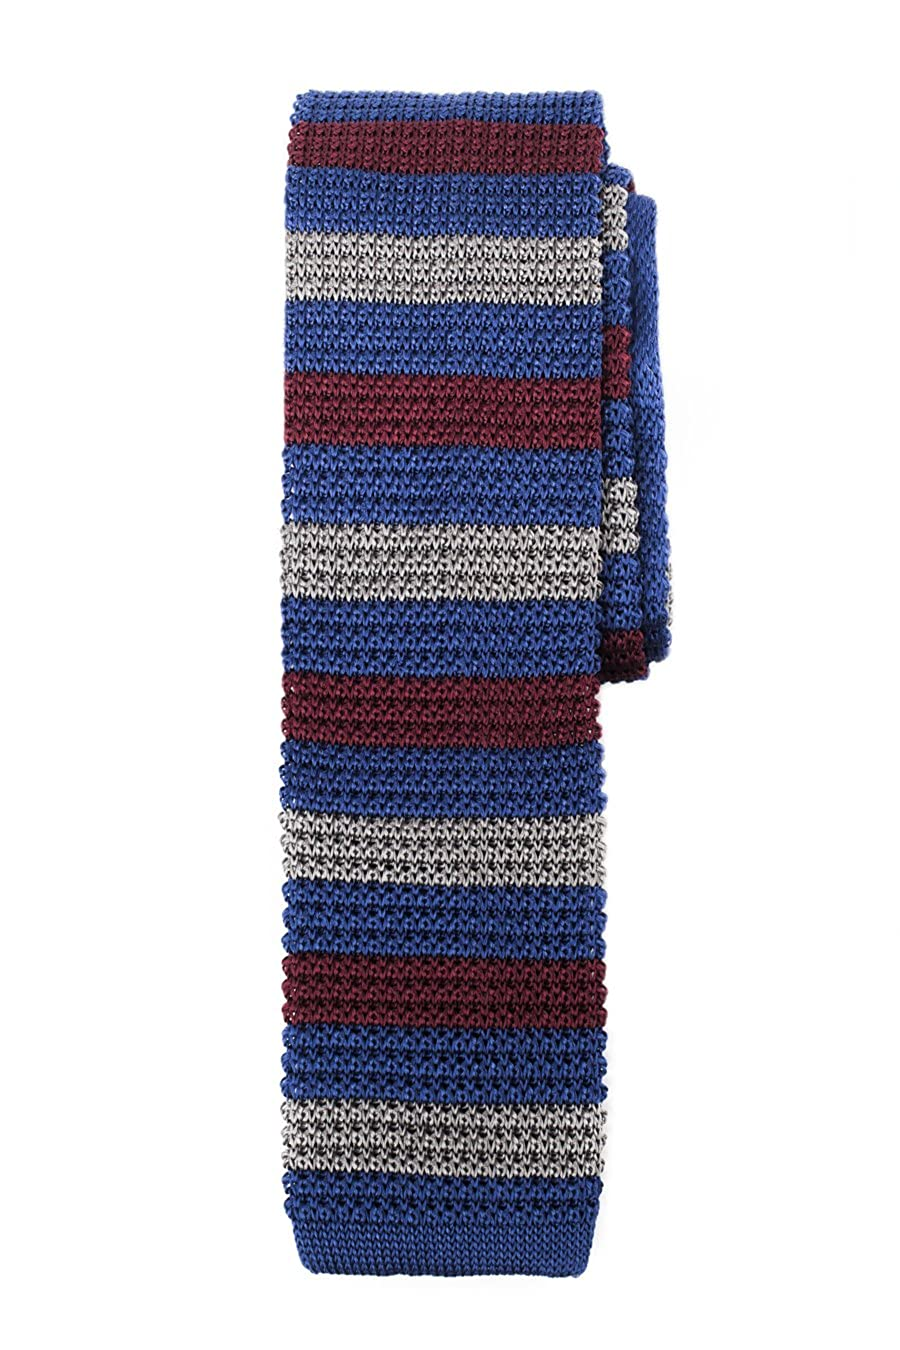 Ribbed Silk Knit Tie Blue Silver Burgundy Stripe